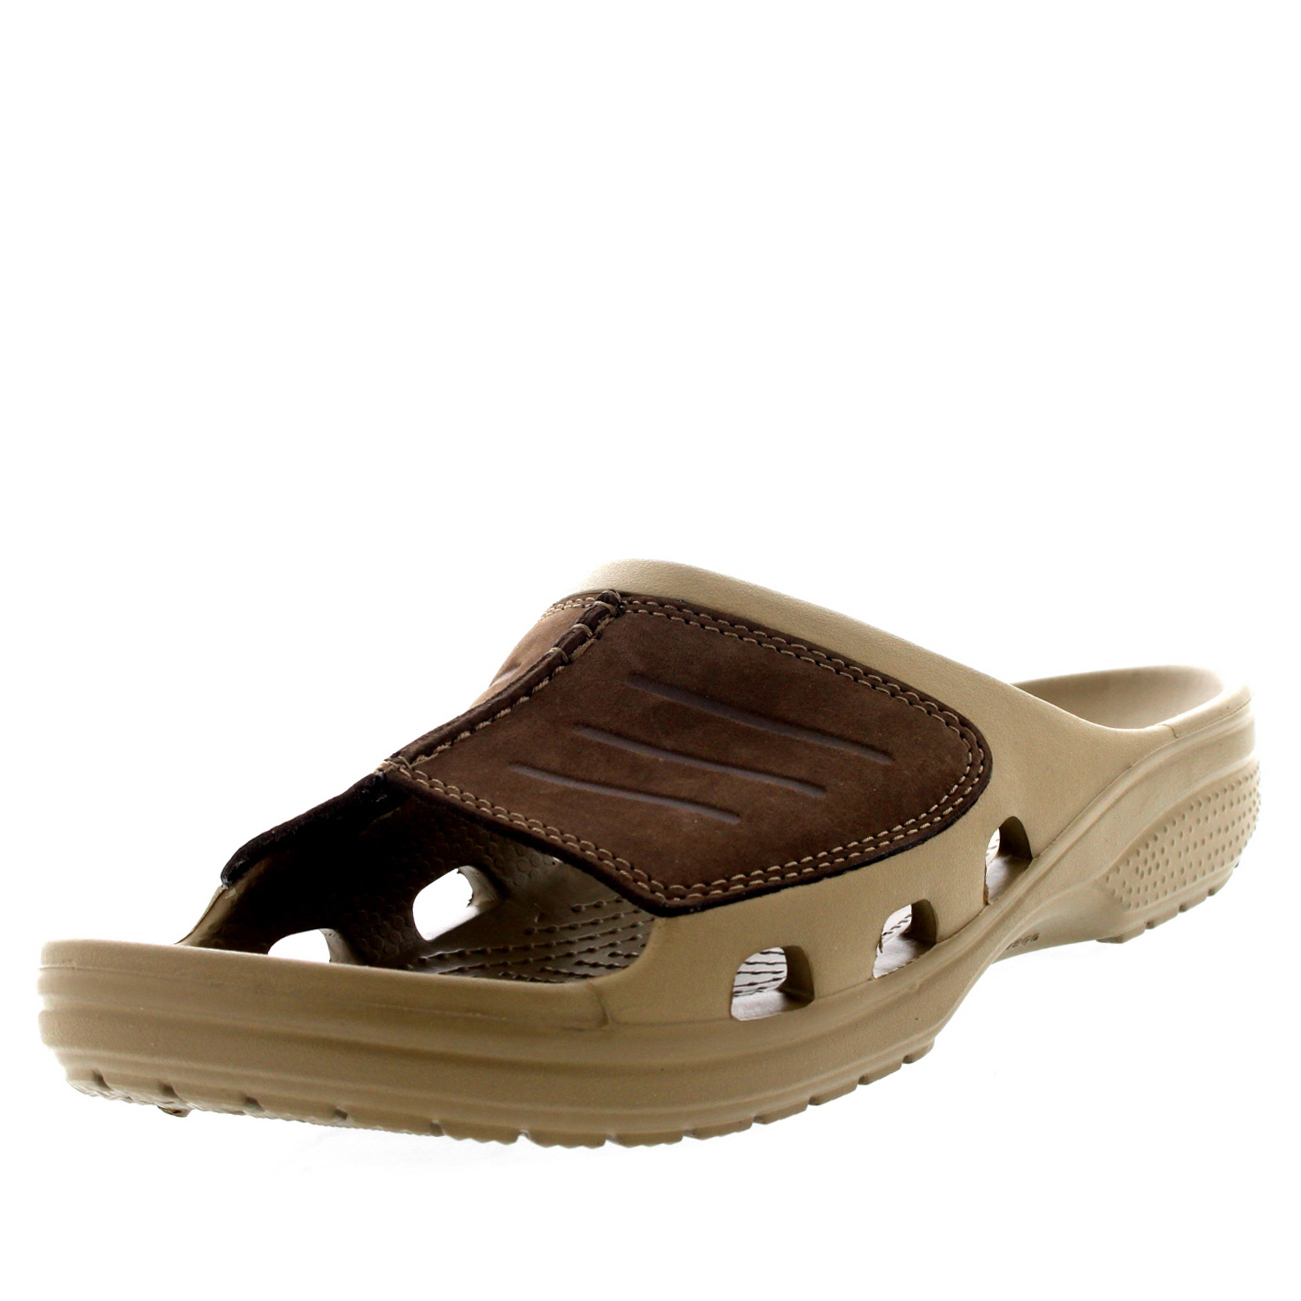 Get comfy with our ergonomic Crocs™ Classic clog. Durable, lightweight, and Hfriendly for beach, boat, or pool. Free shipping on qualifying orders. Great customer service. Order today.